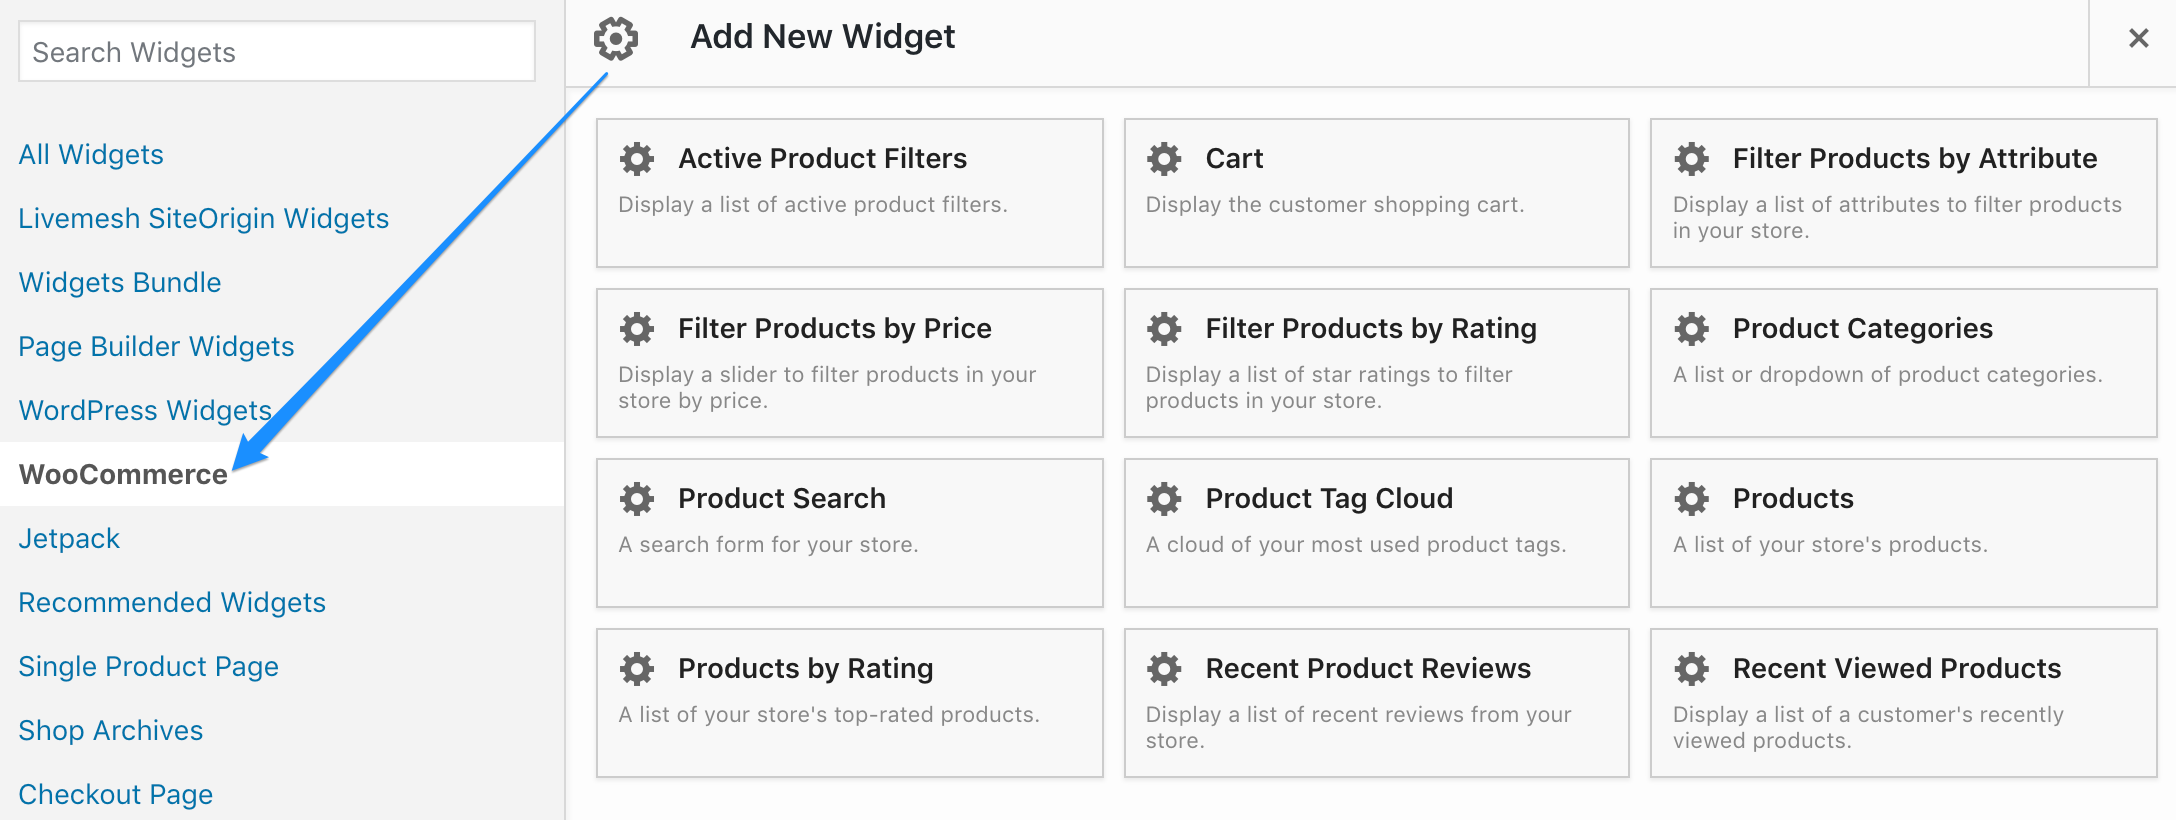 Questions about Vantage and woocommerce - SiteOrigin